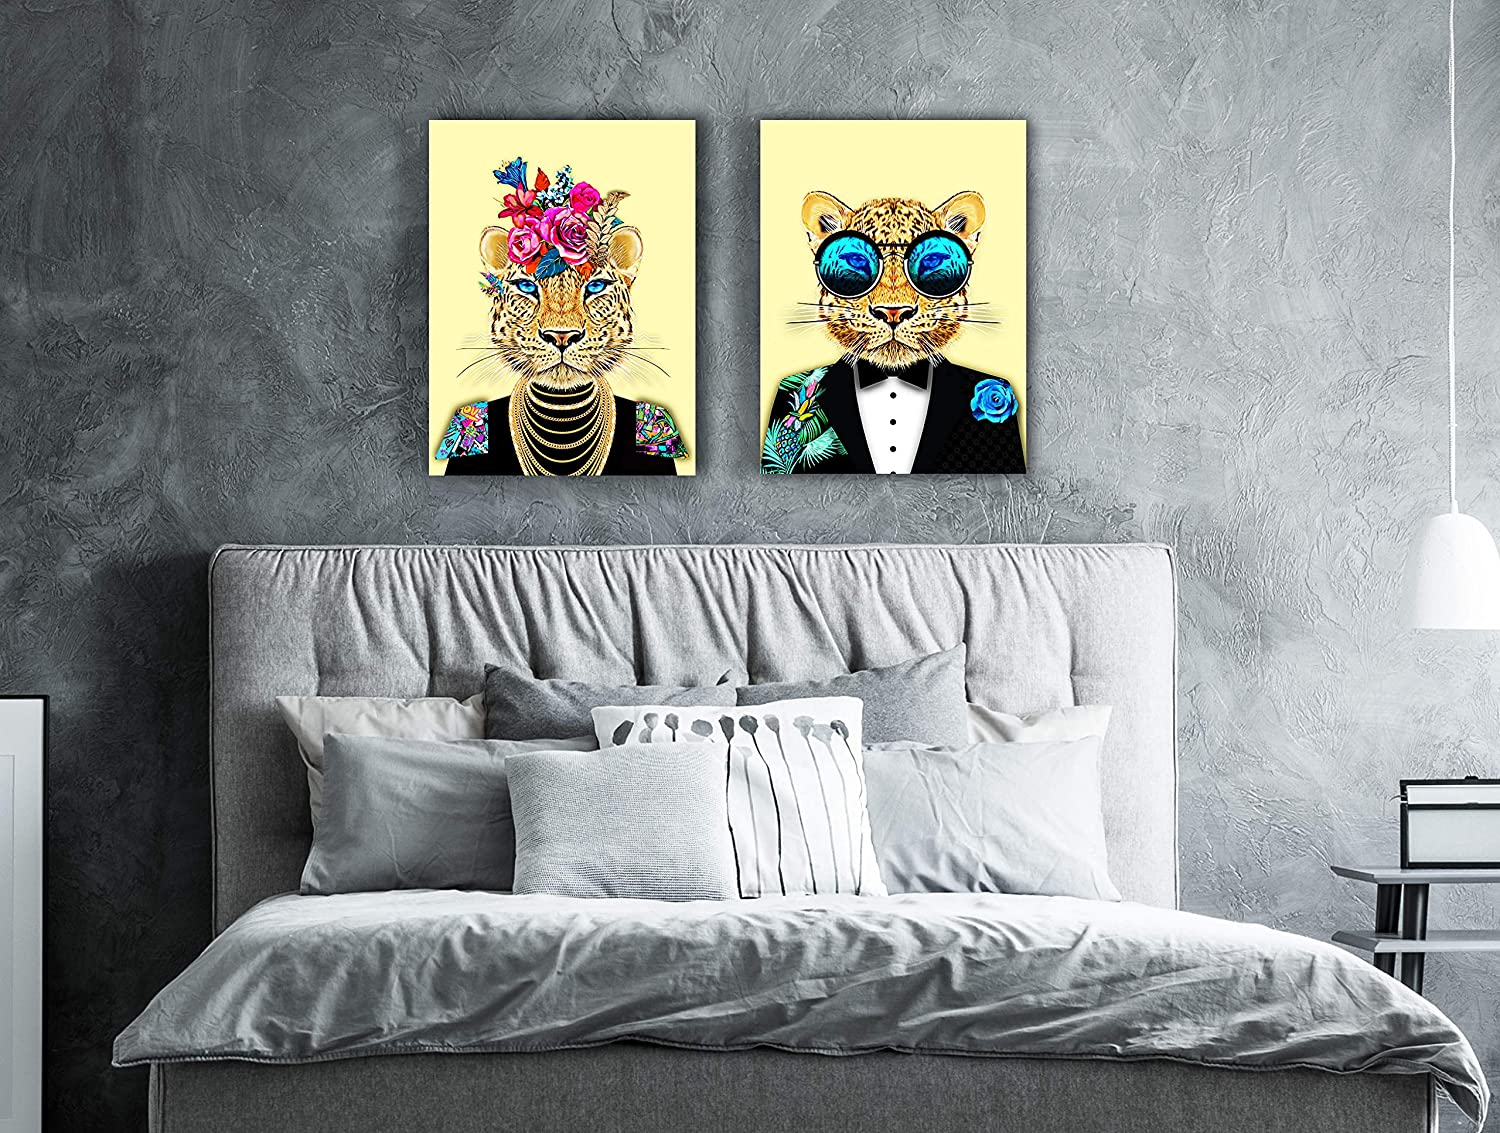 "Framed Canvas Wall Art - Suited Leopard Boho Wall Pictures Prints for Home Wall Room Decor - Artwork Paintings Set for Living Room Bedroom and Kitchen (11.8"" x 15.75"" x2 Panels, Yellow Leopard)"